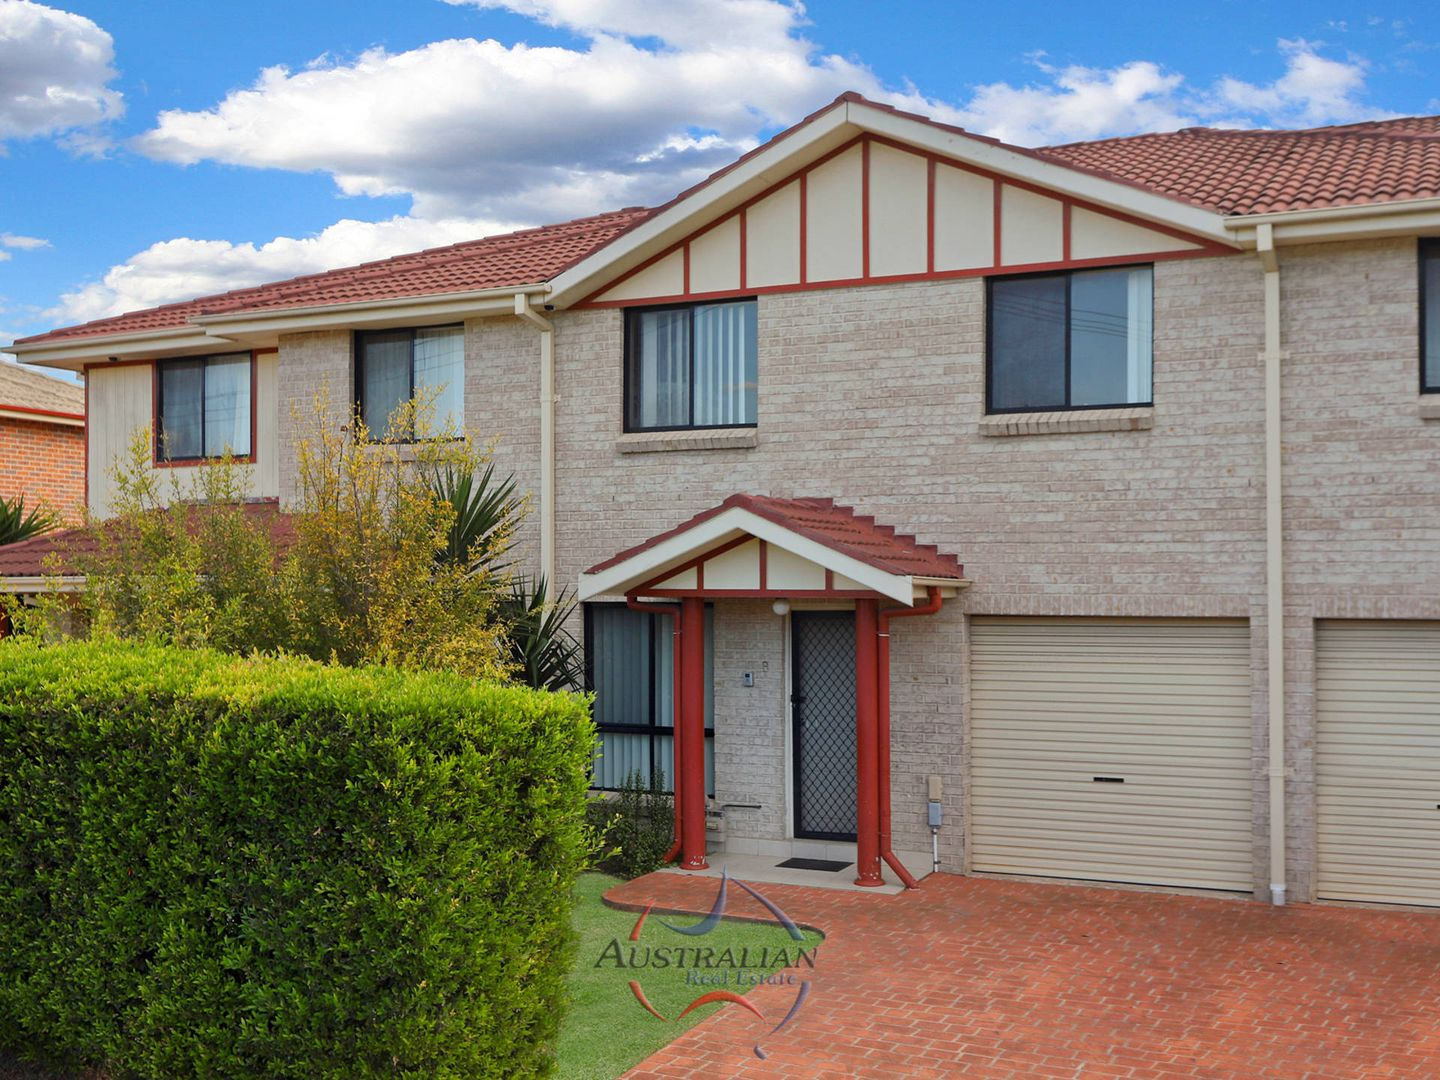 8/38 Hillcrest Road, Quakers Hill NSW 2763, Image 0